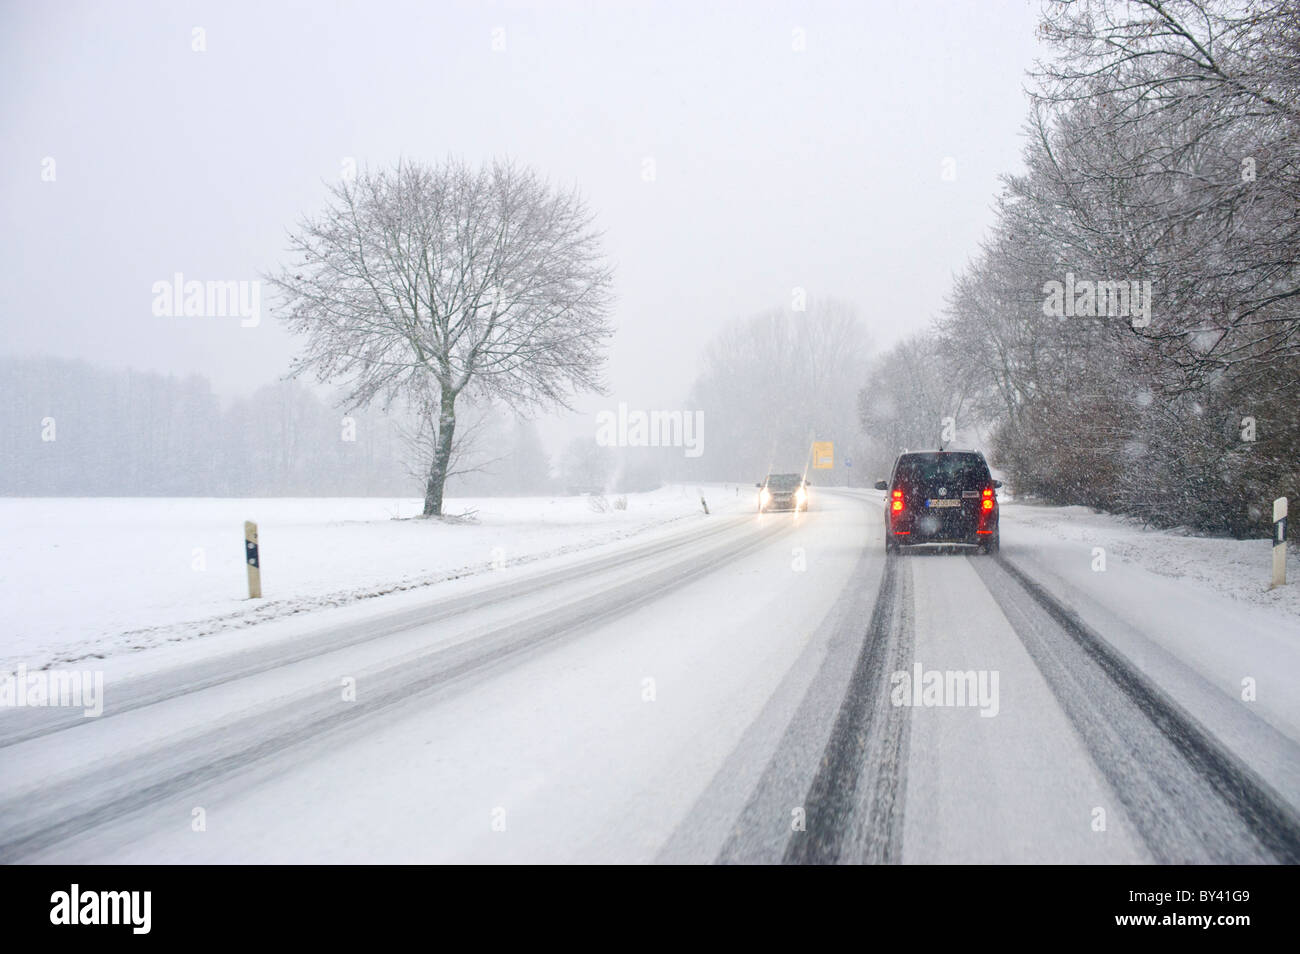 street conditions winter wintertime street seen out of a car window carwindow snow snowing street road ice icy covered - Stock Image